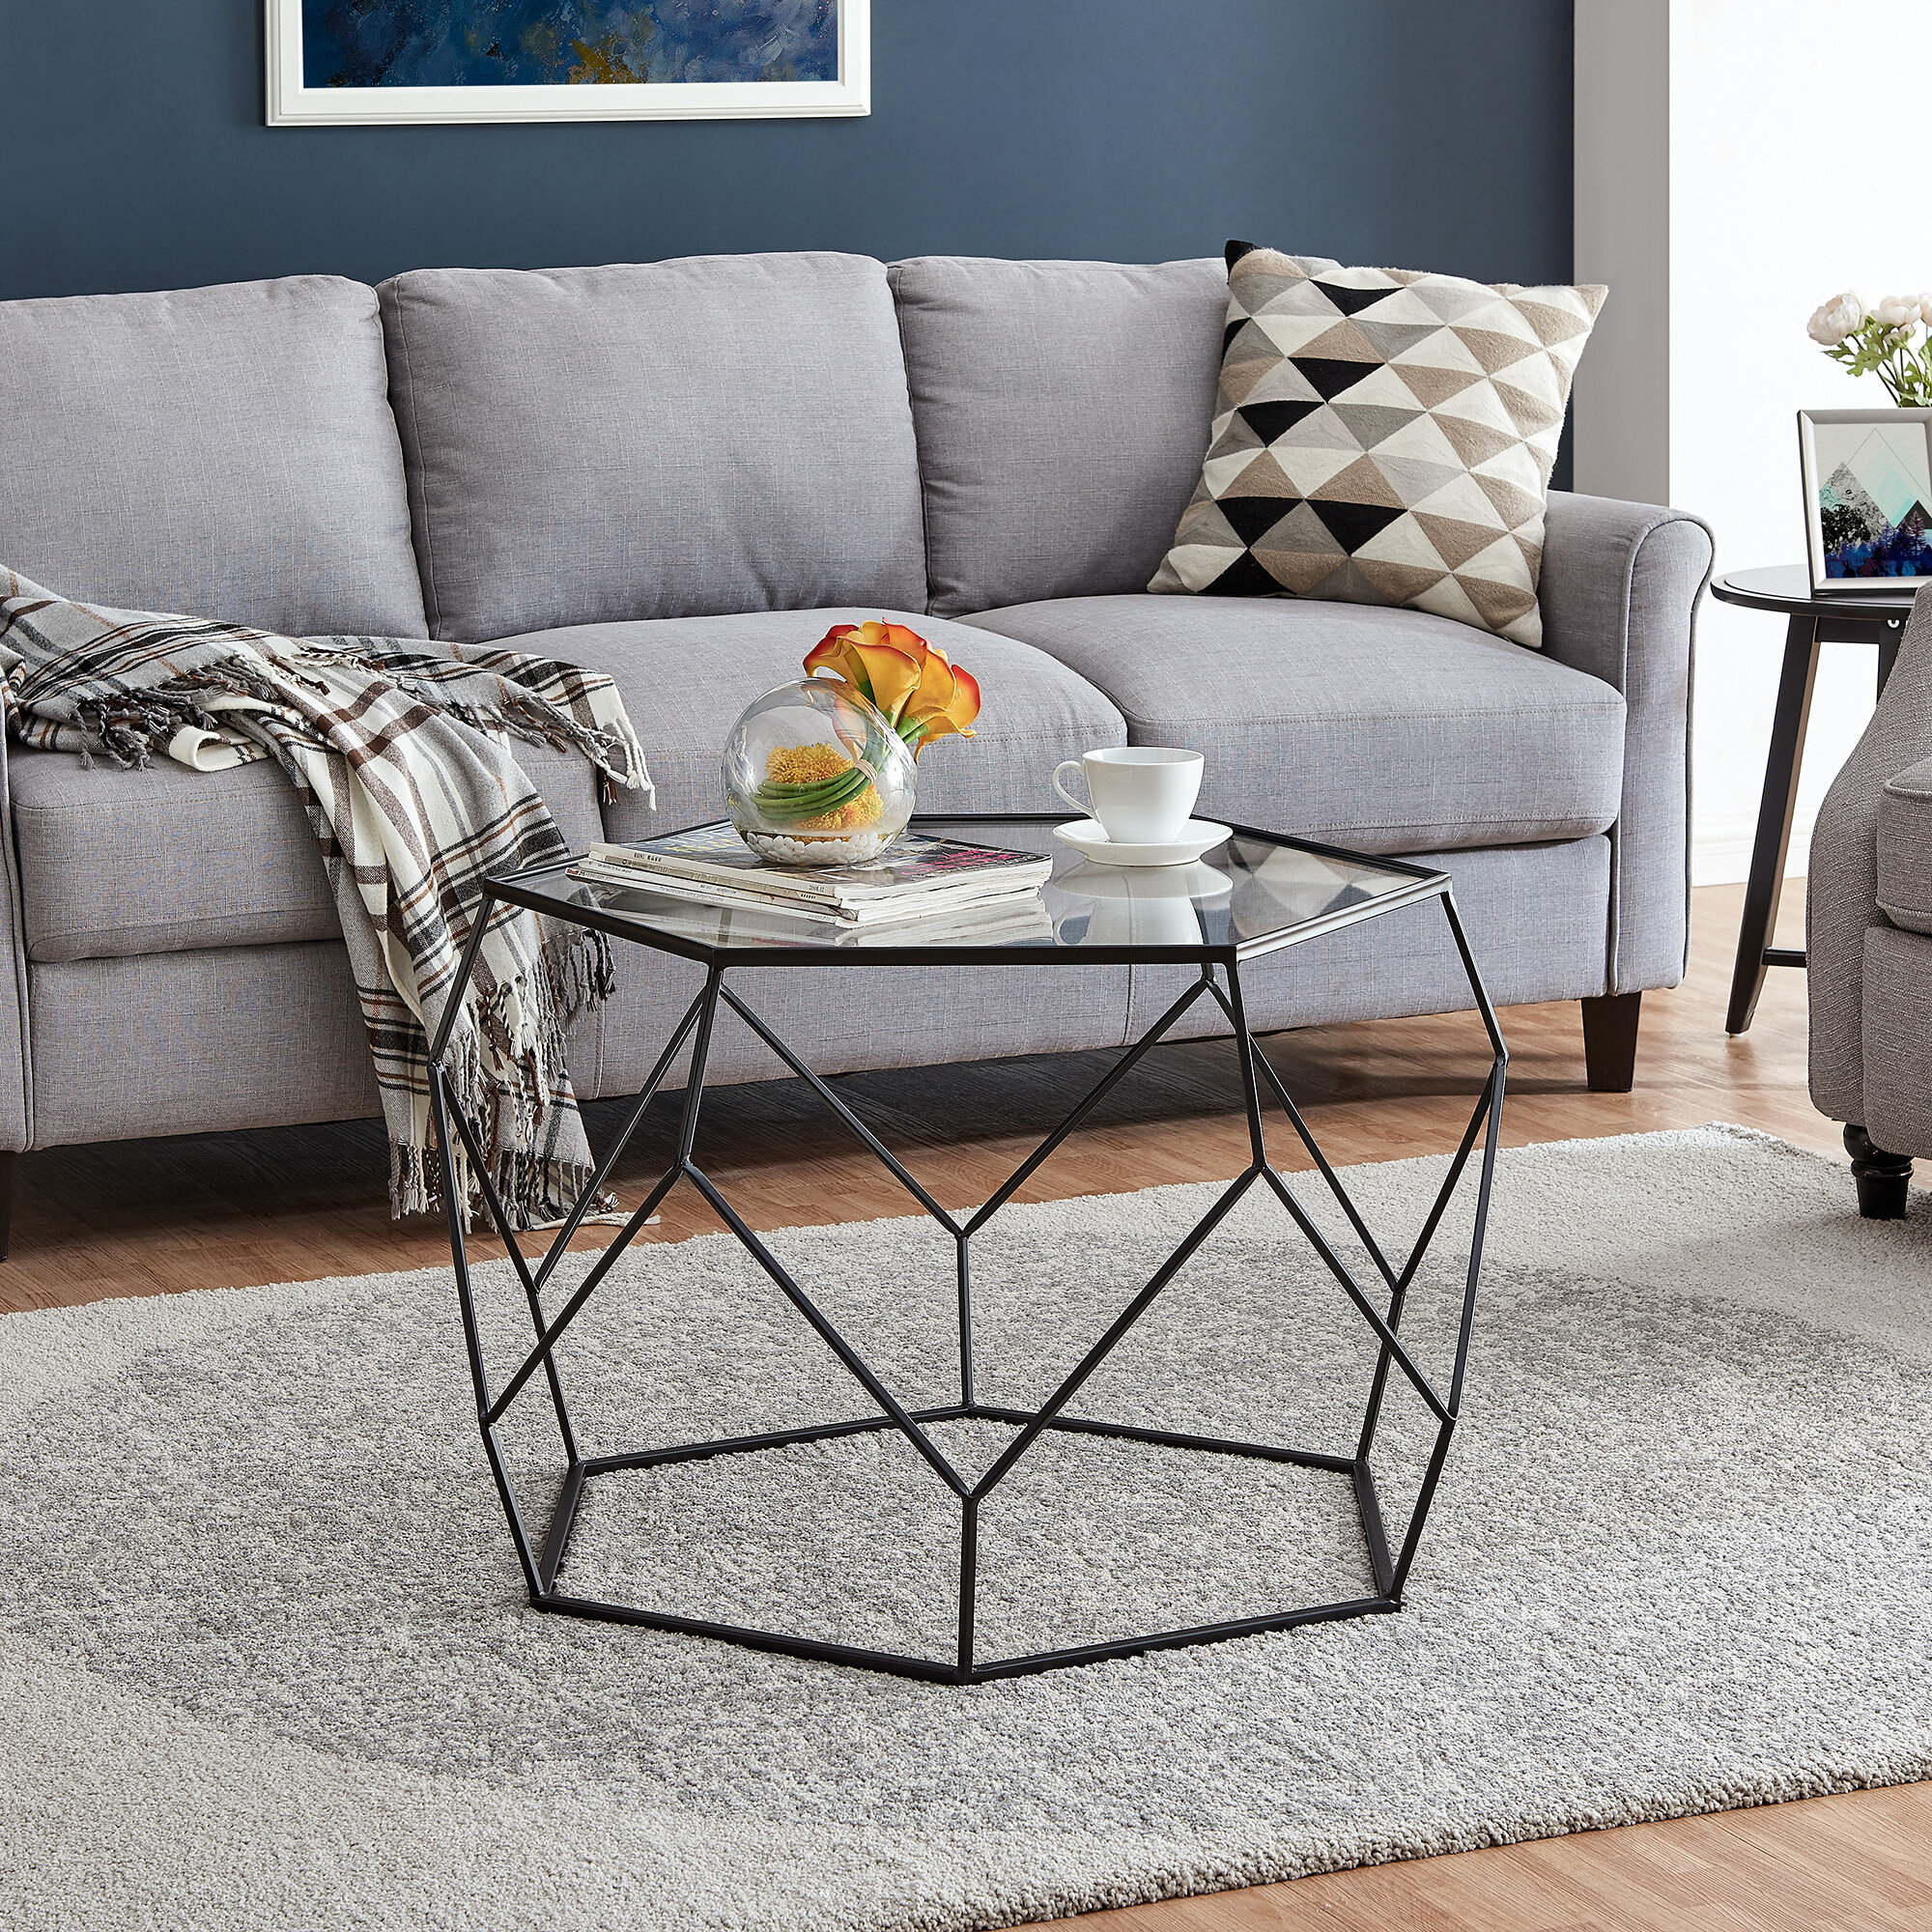 Assembled Glass Coffee Tables You Ll Love In 2021 Wayfair